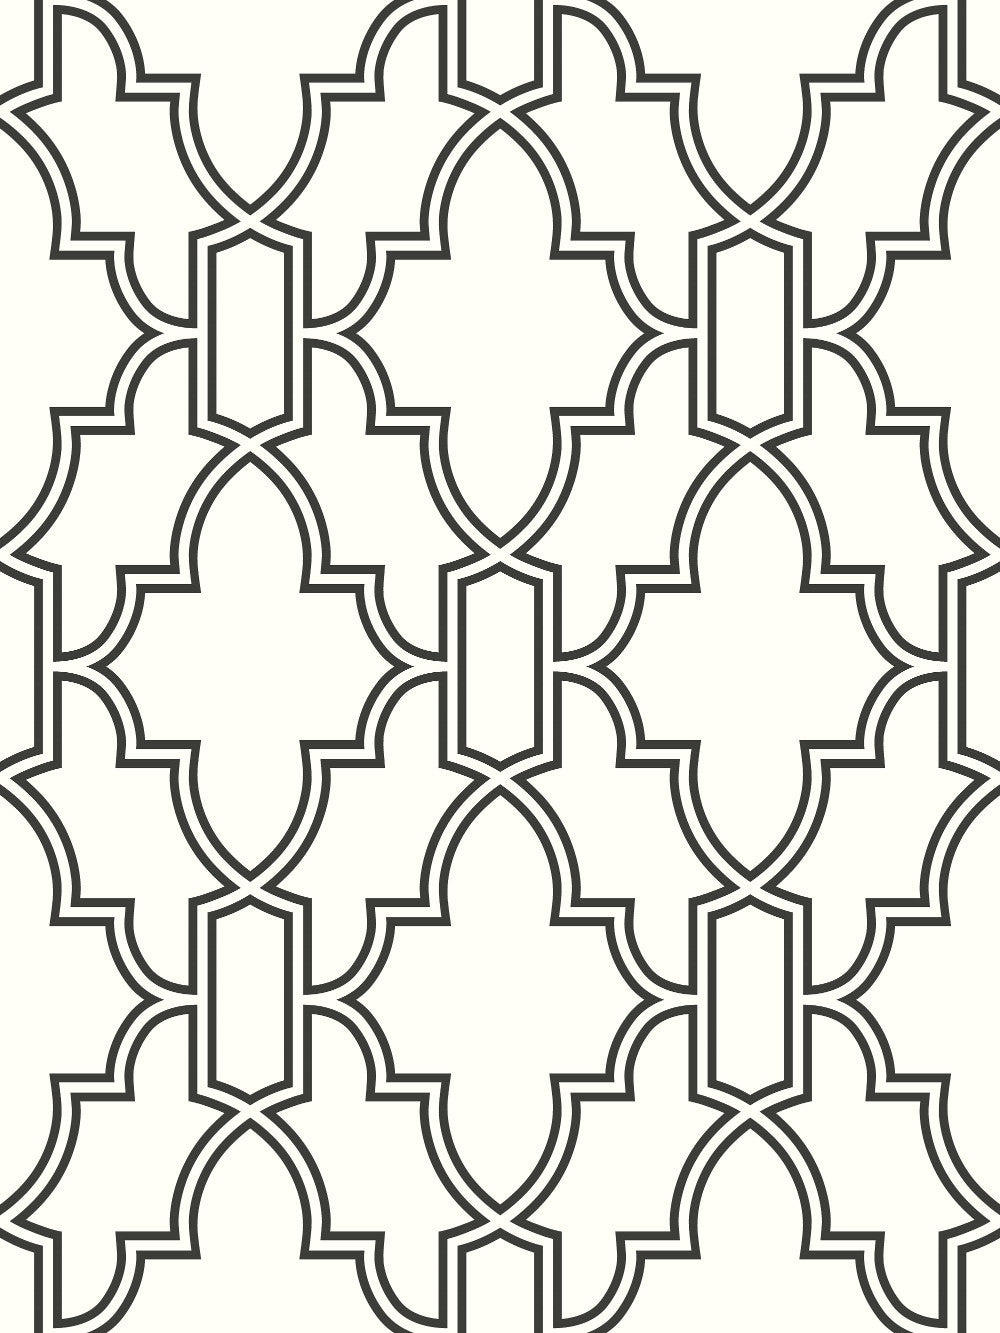 Sample Tile Trellis Peel And Stick Wallpaper In Black And